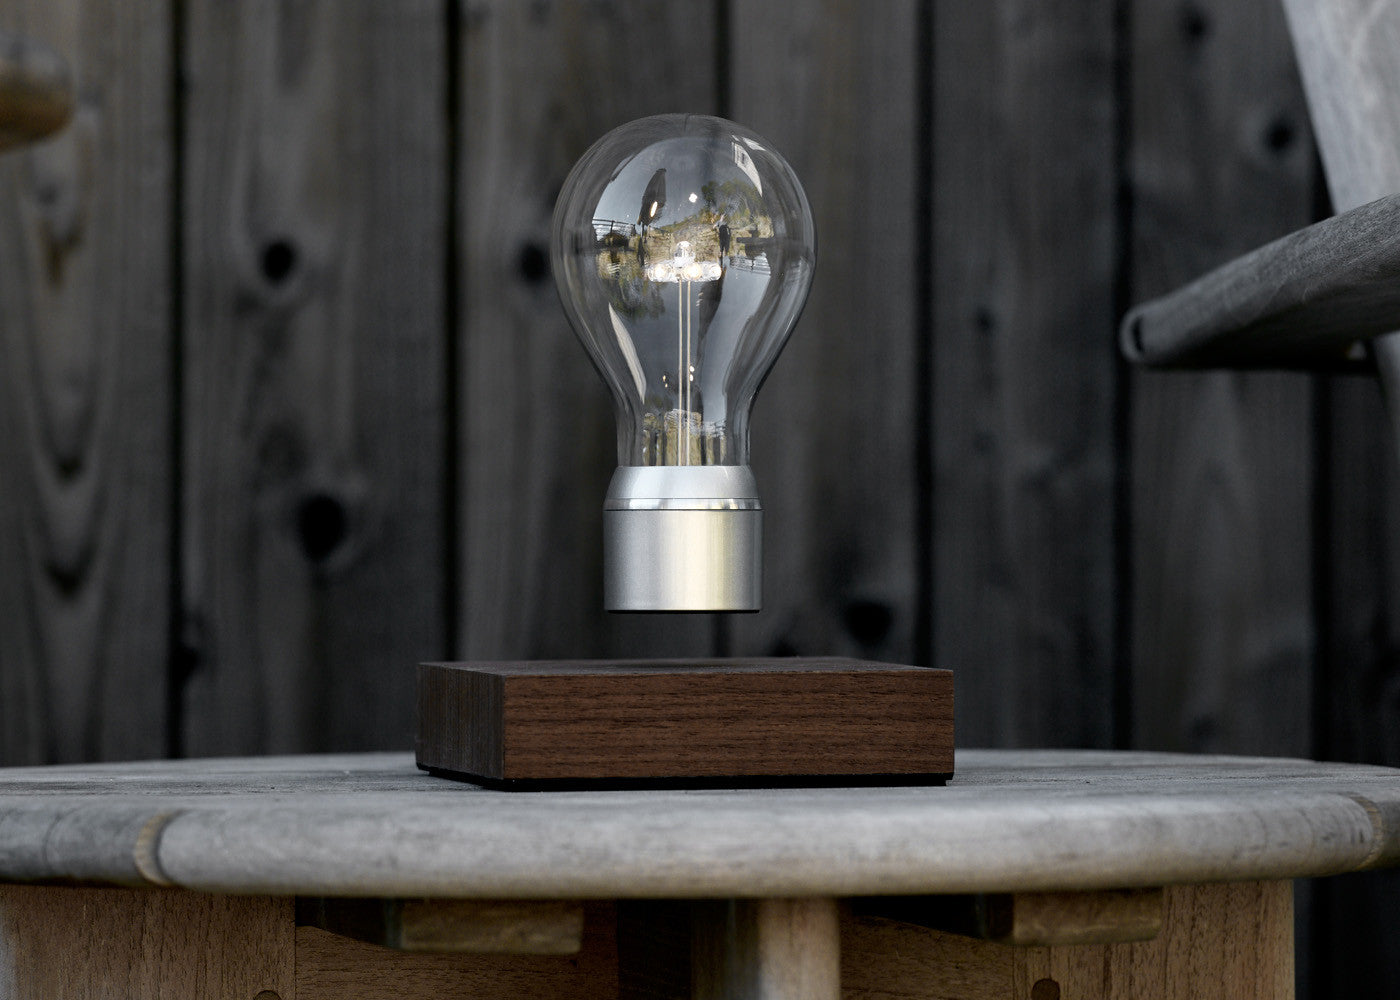 Lifestyle image of FLYTE Levitating light bulb Manhattan on terrace